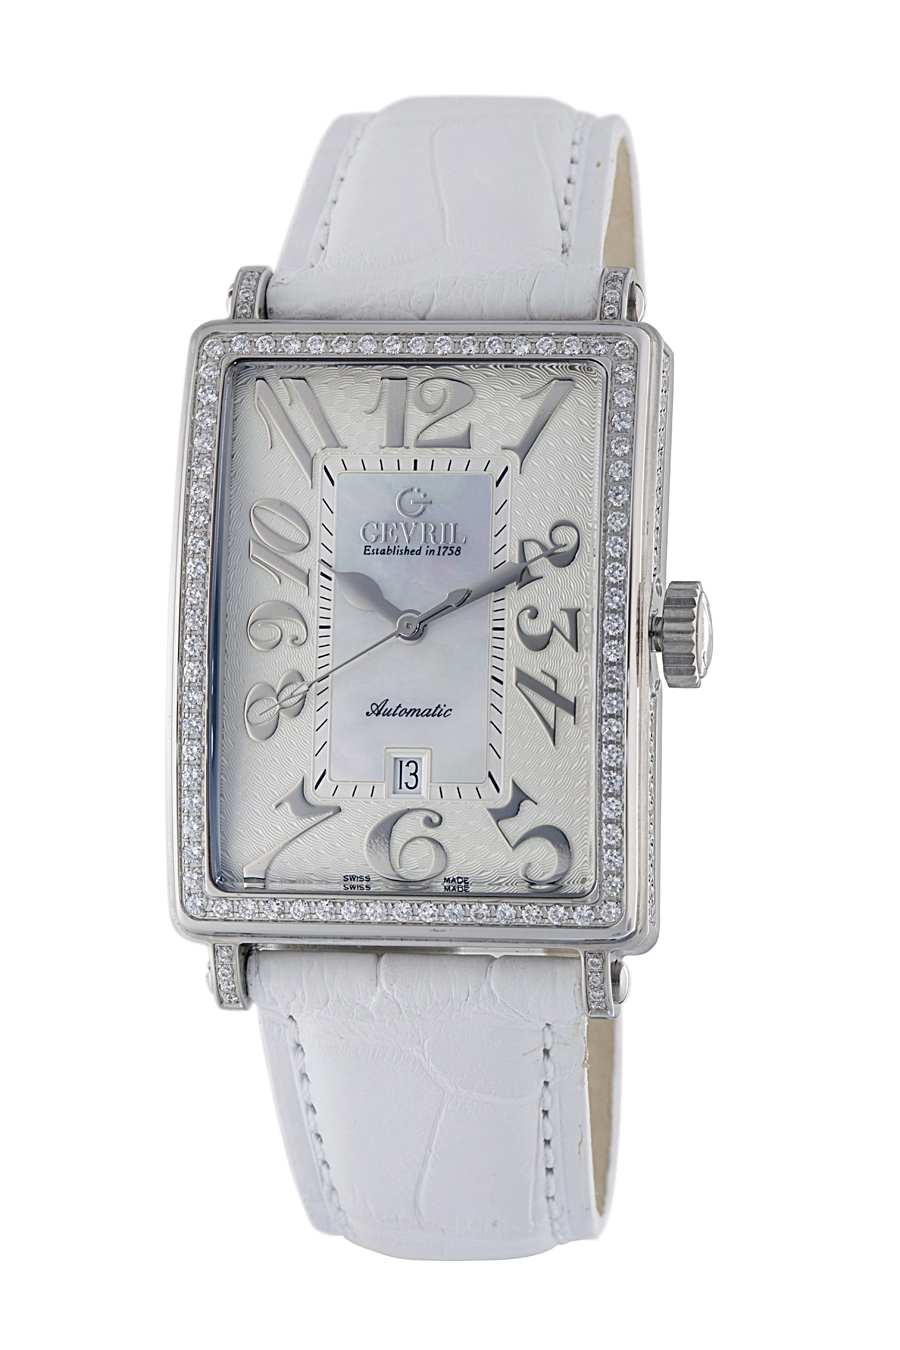 Gevril glamour watch is well glamorous watch brands for Gevril watches